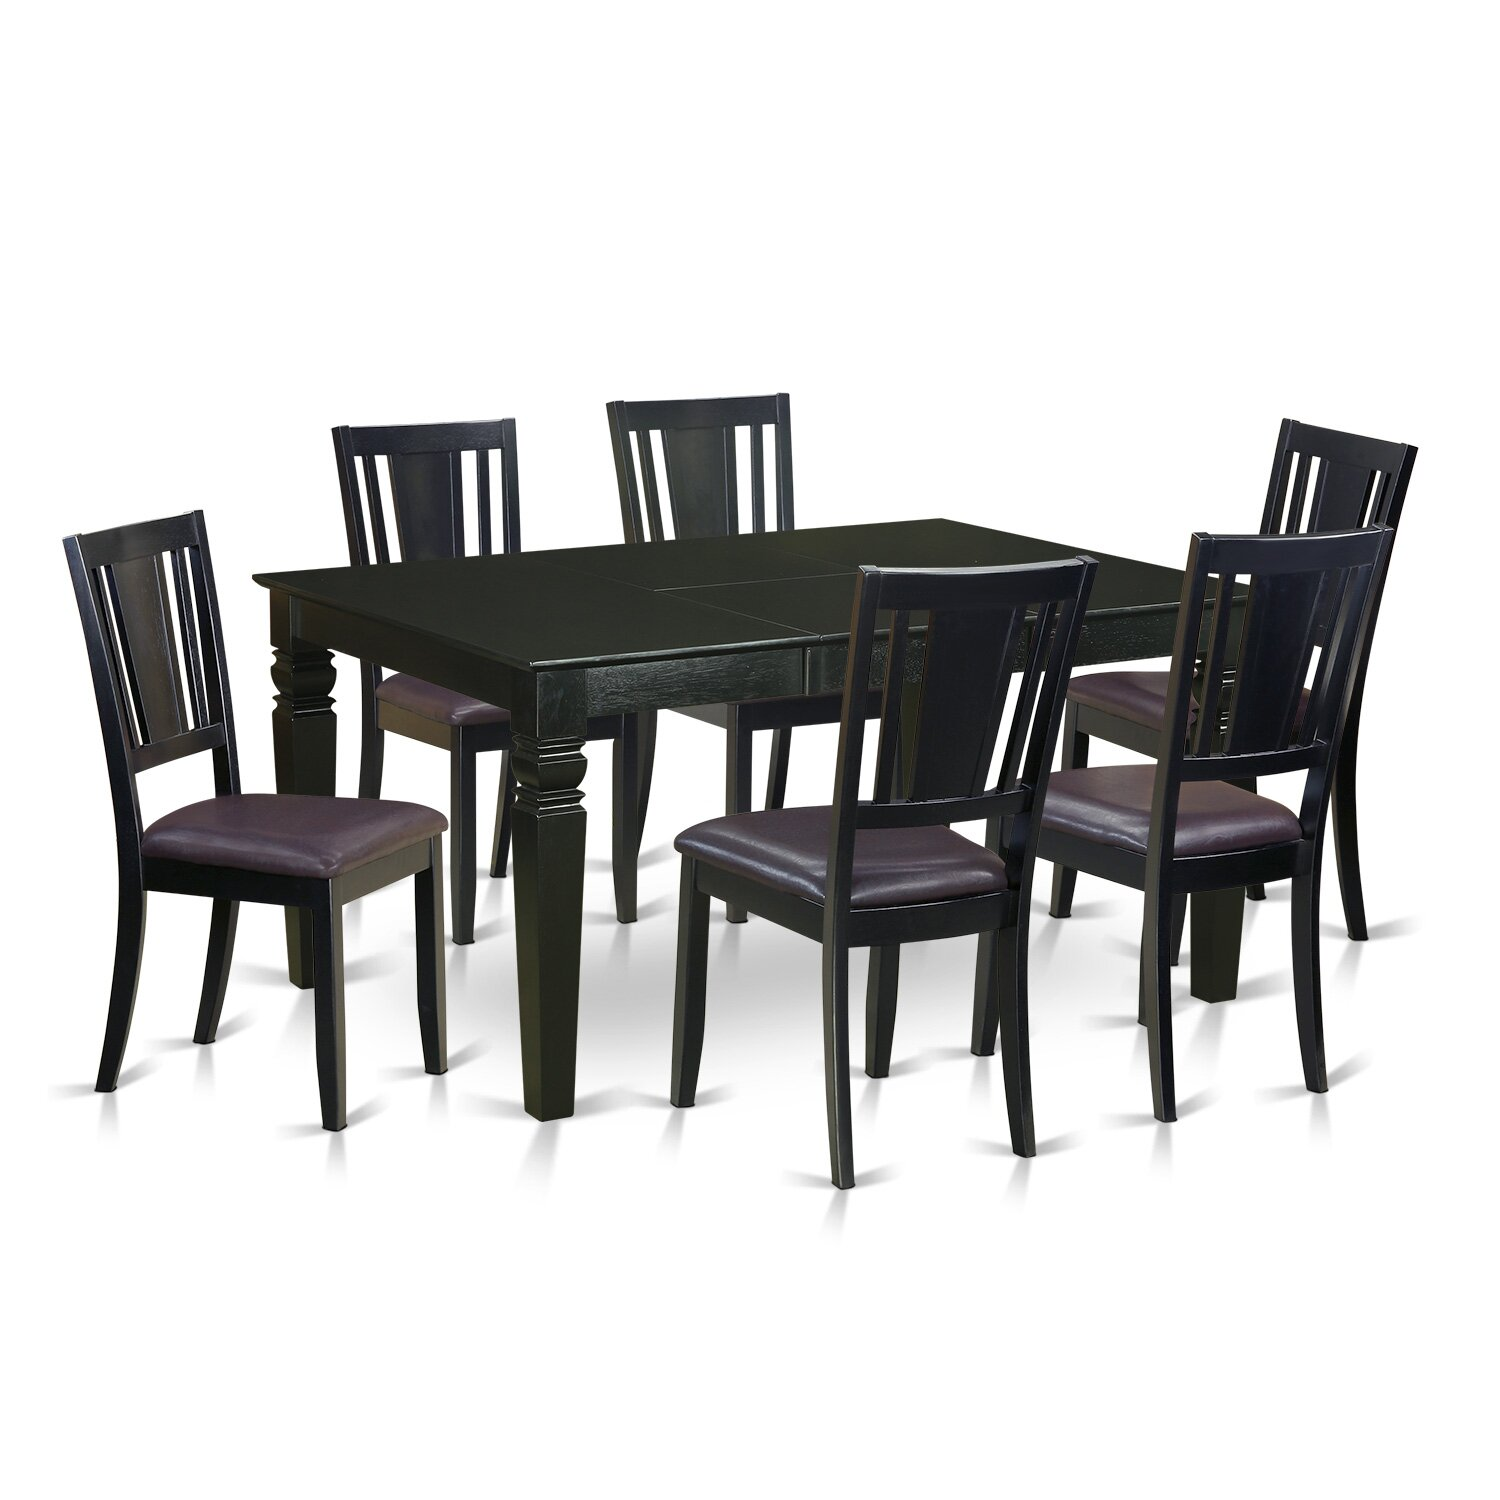 Wooden importers weston 7 piece dining set wayfair for Kitchen table set 7 piece